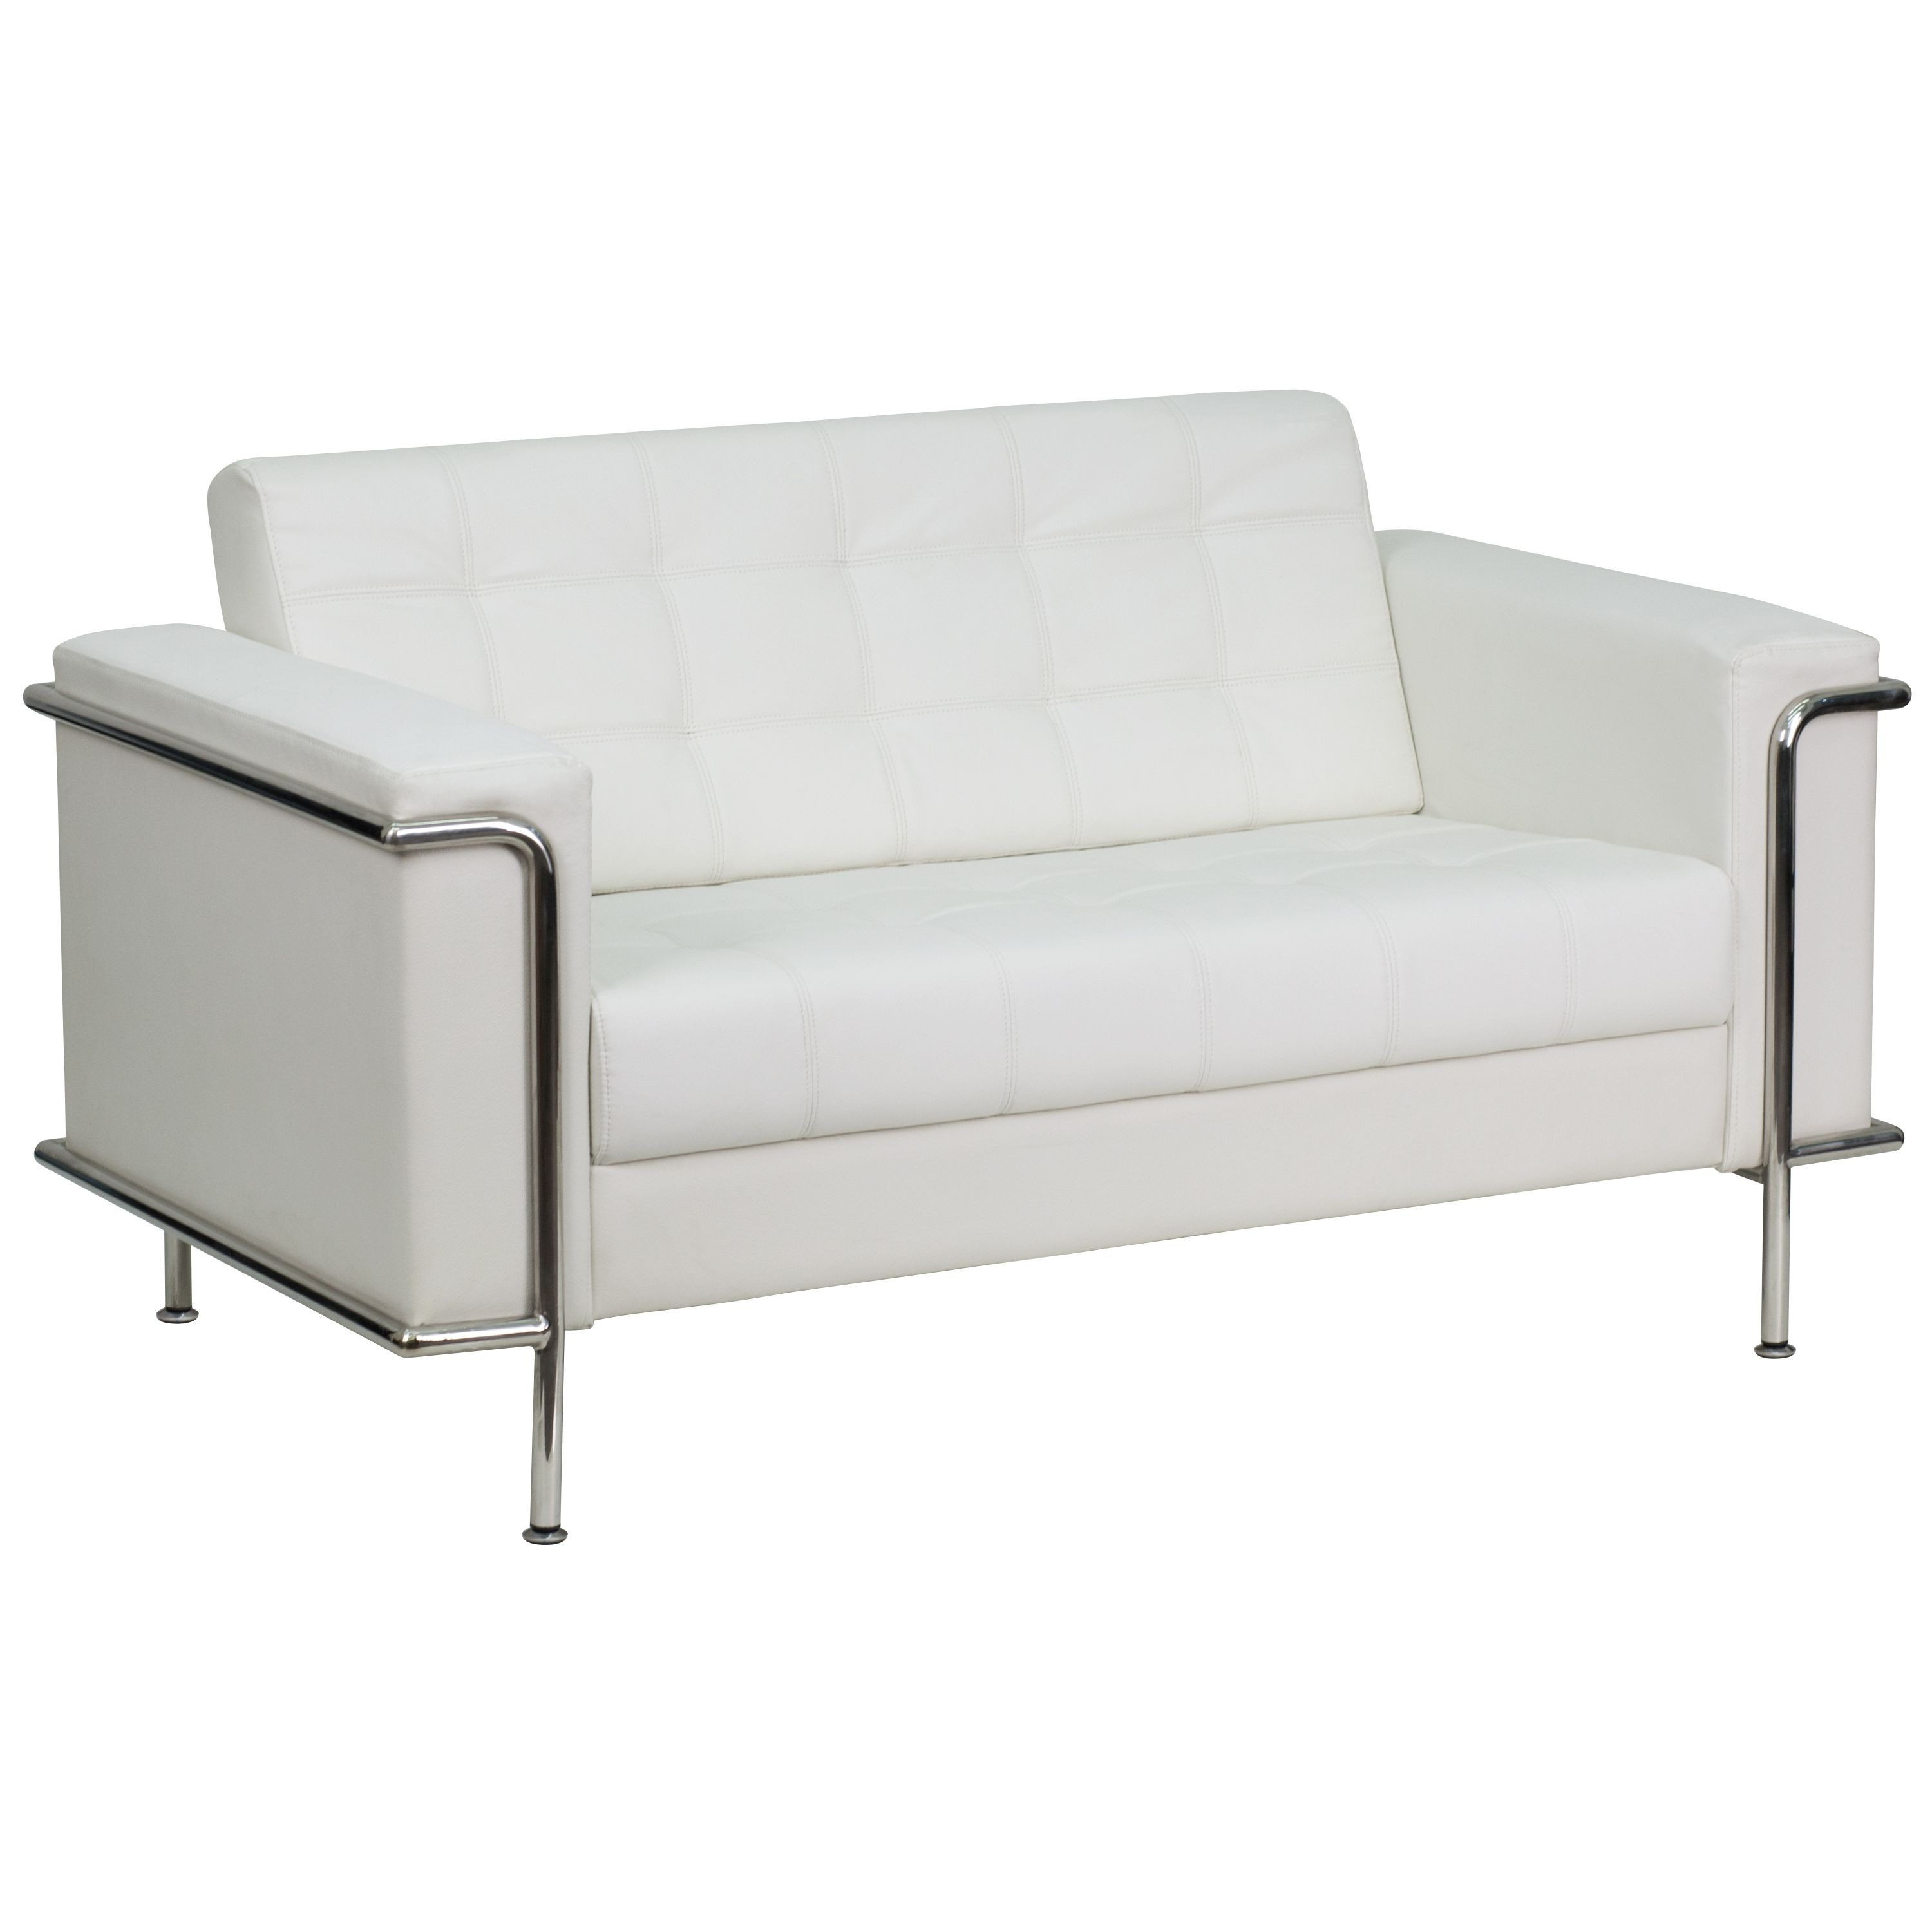 Flash Furniture ZB-LESLEY-8090-LS-WH-GG Lesley Series Contemporary White Leather Love Seat with Encasing Frame